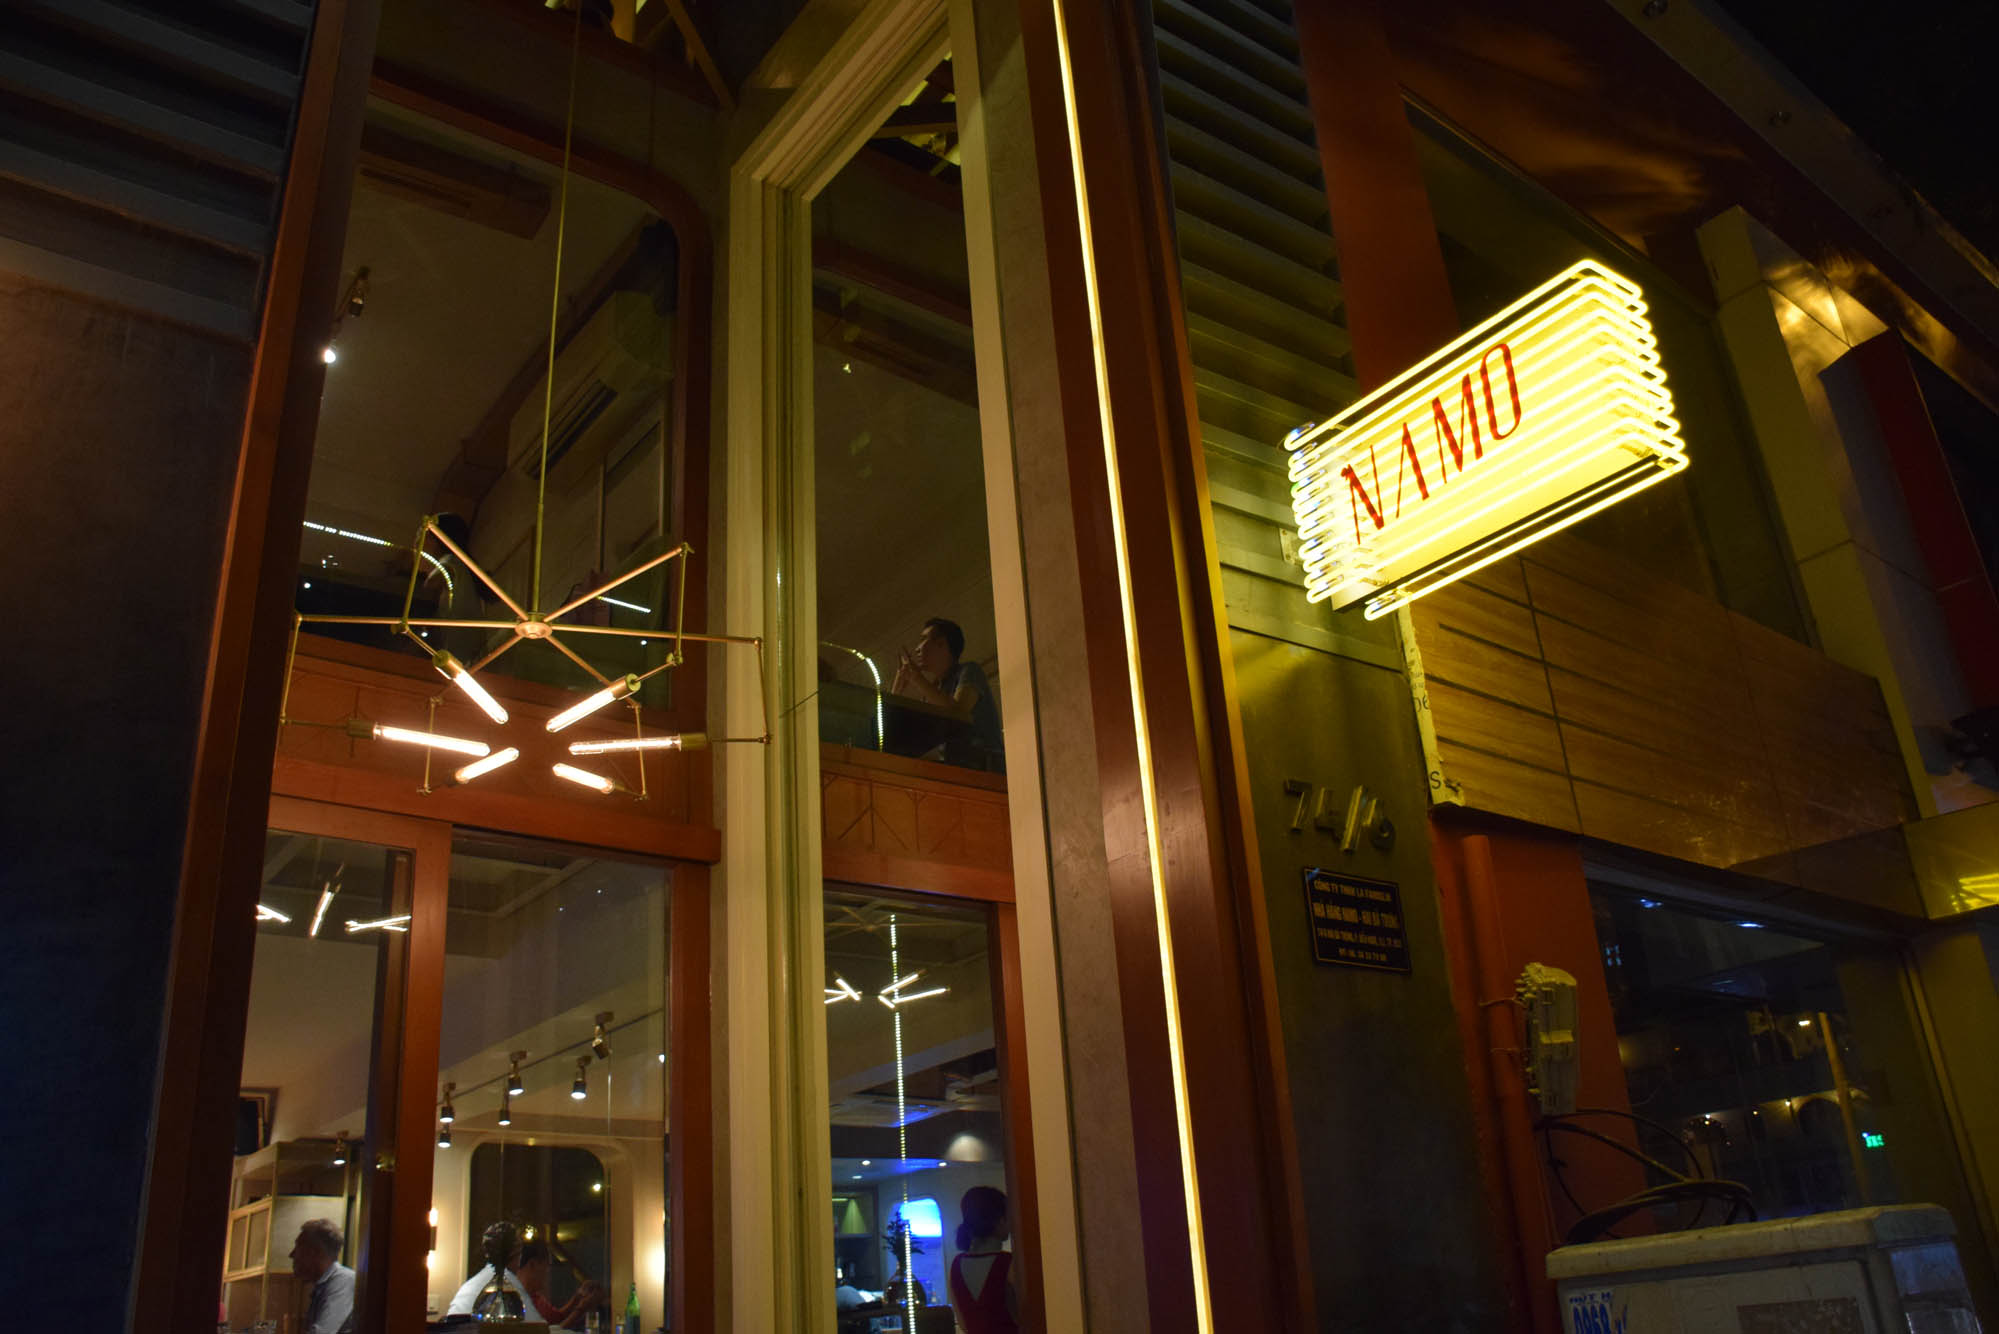 NAMO-RESTAURANT-ITALIAN-PIZZA-District-1-french-restaurant-ho-chi-minh-city-saigon-vietnam-best-restaurants-melhores-restaurantes